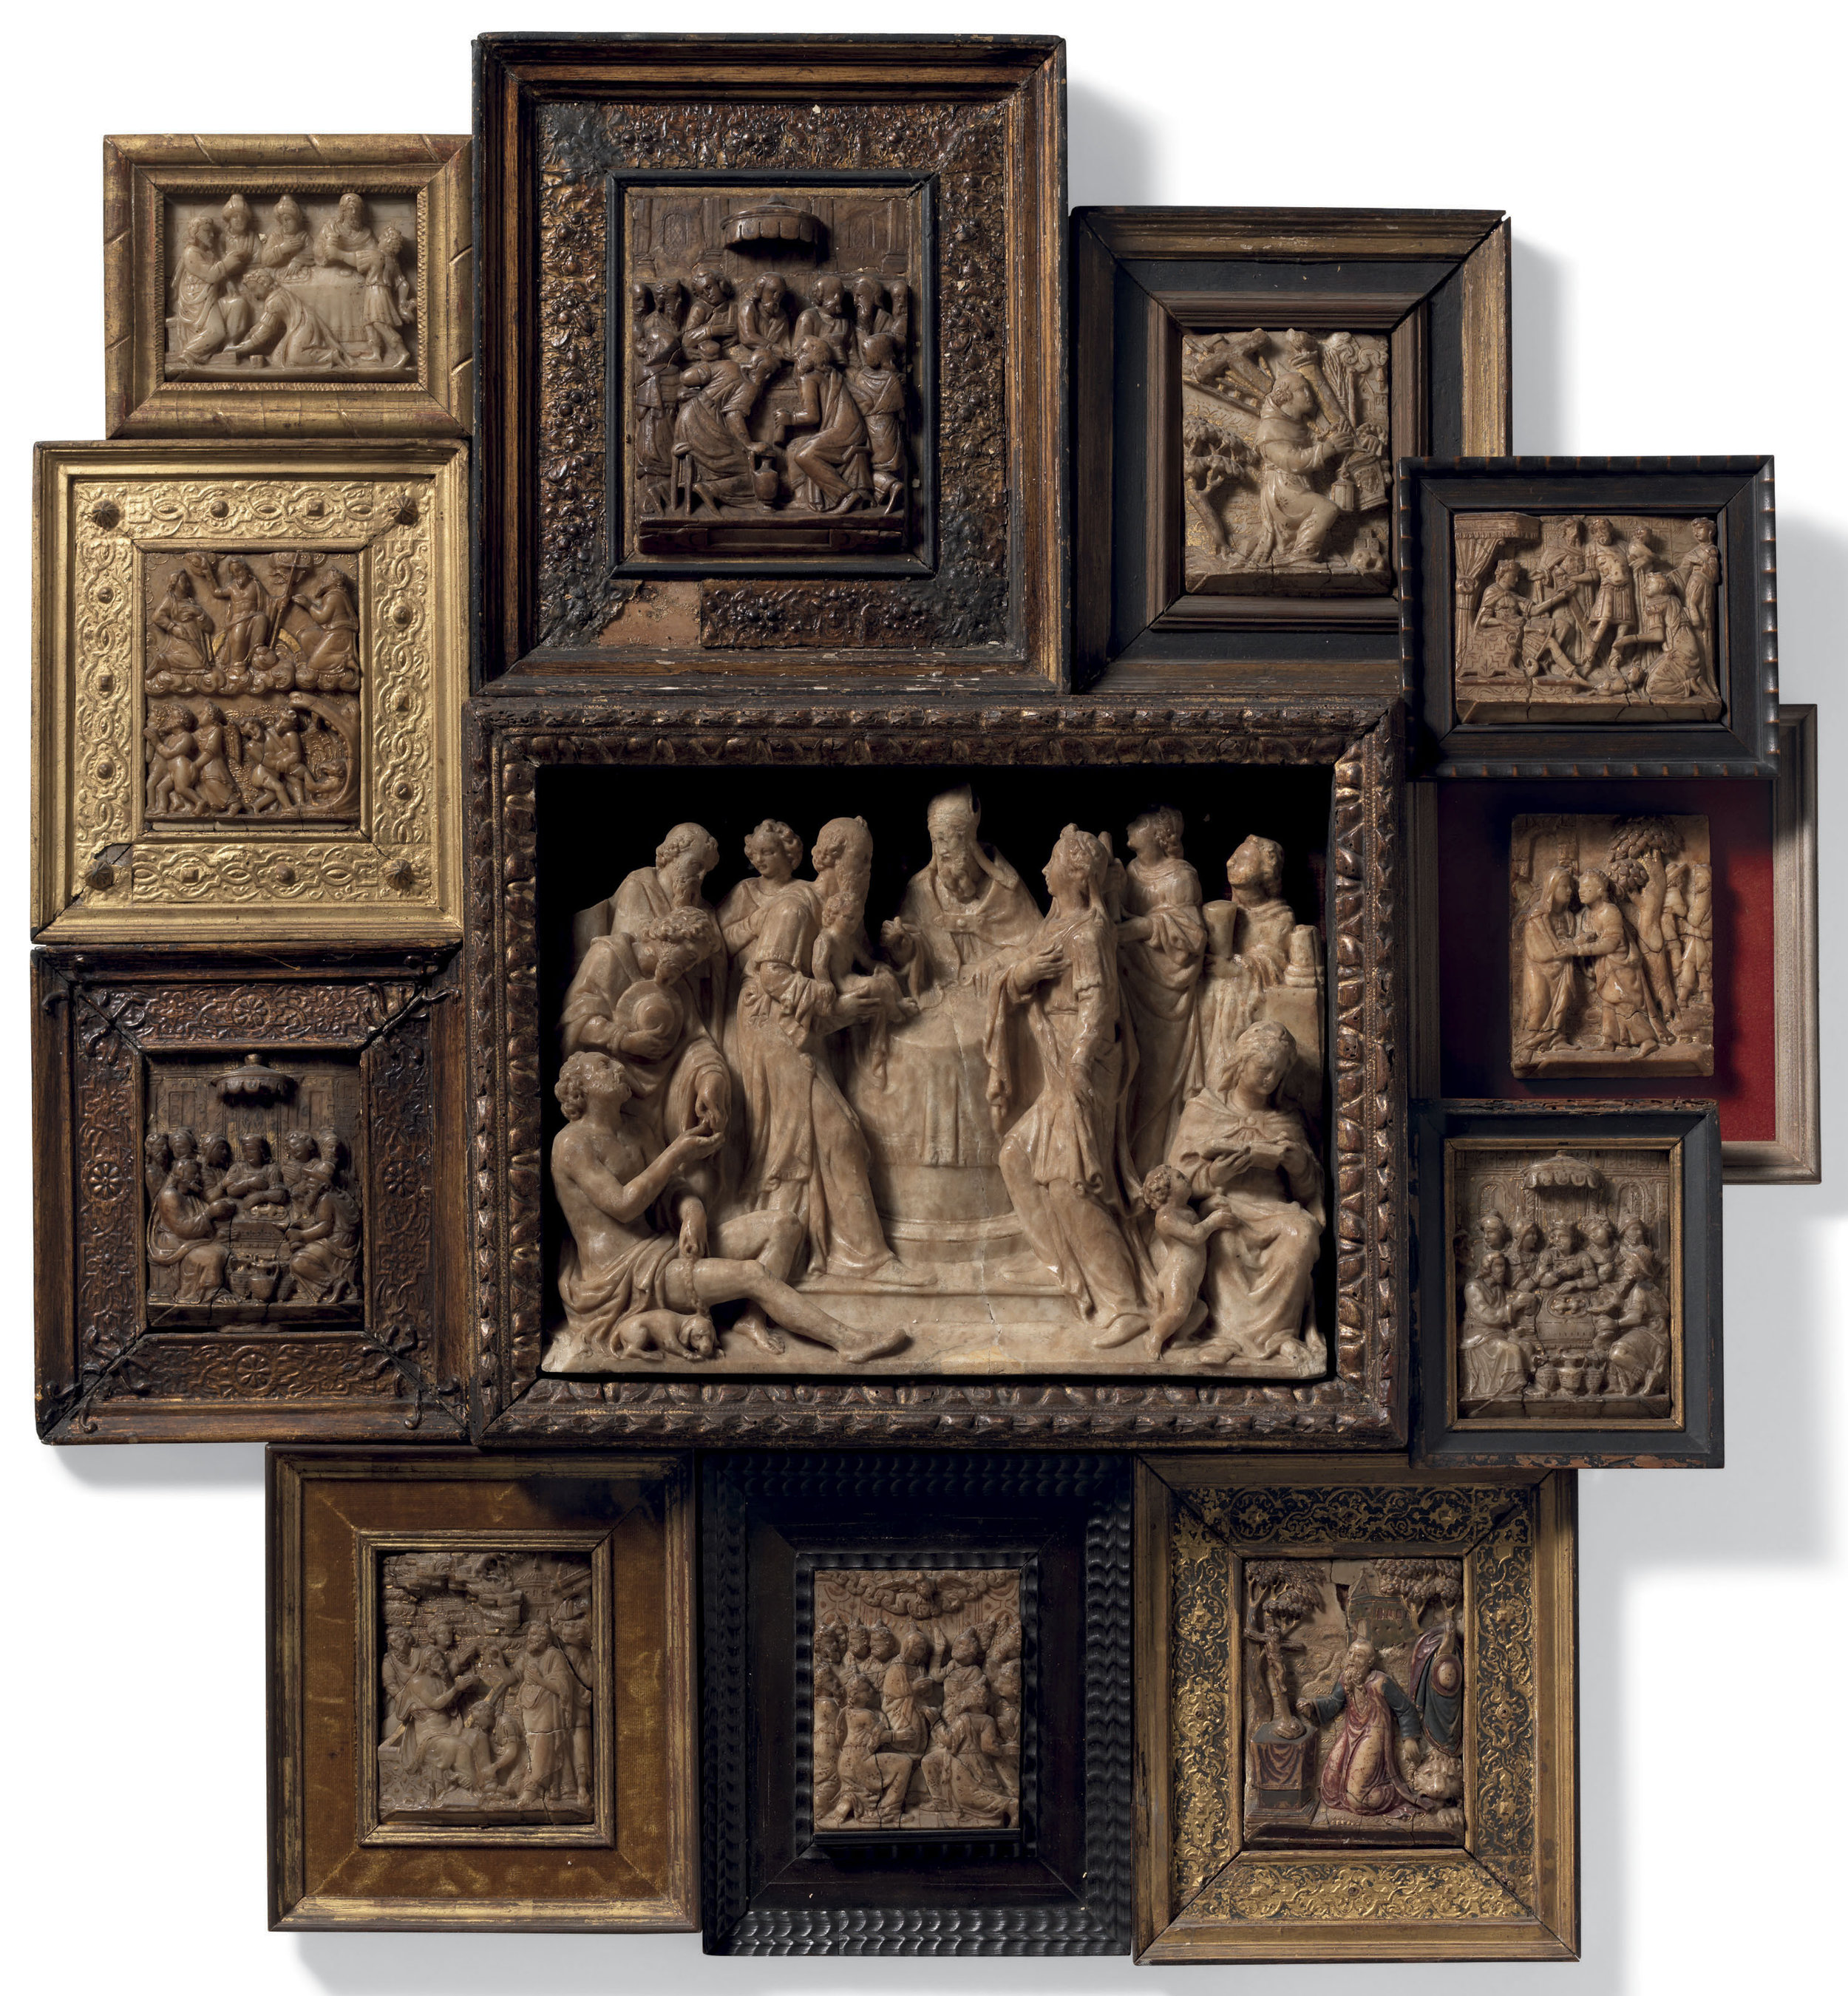 2019_NYR_17467_0328_000(malines_17th_century_a_group_of_twelve_framed_alabaster_reliefs).jpg